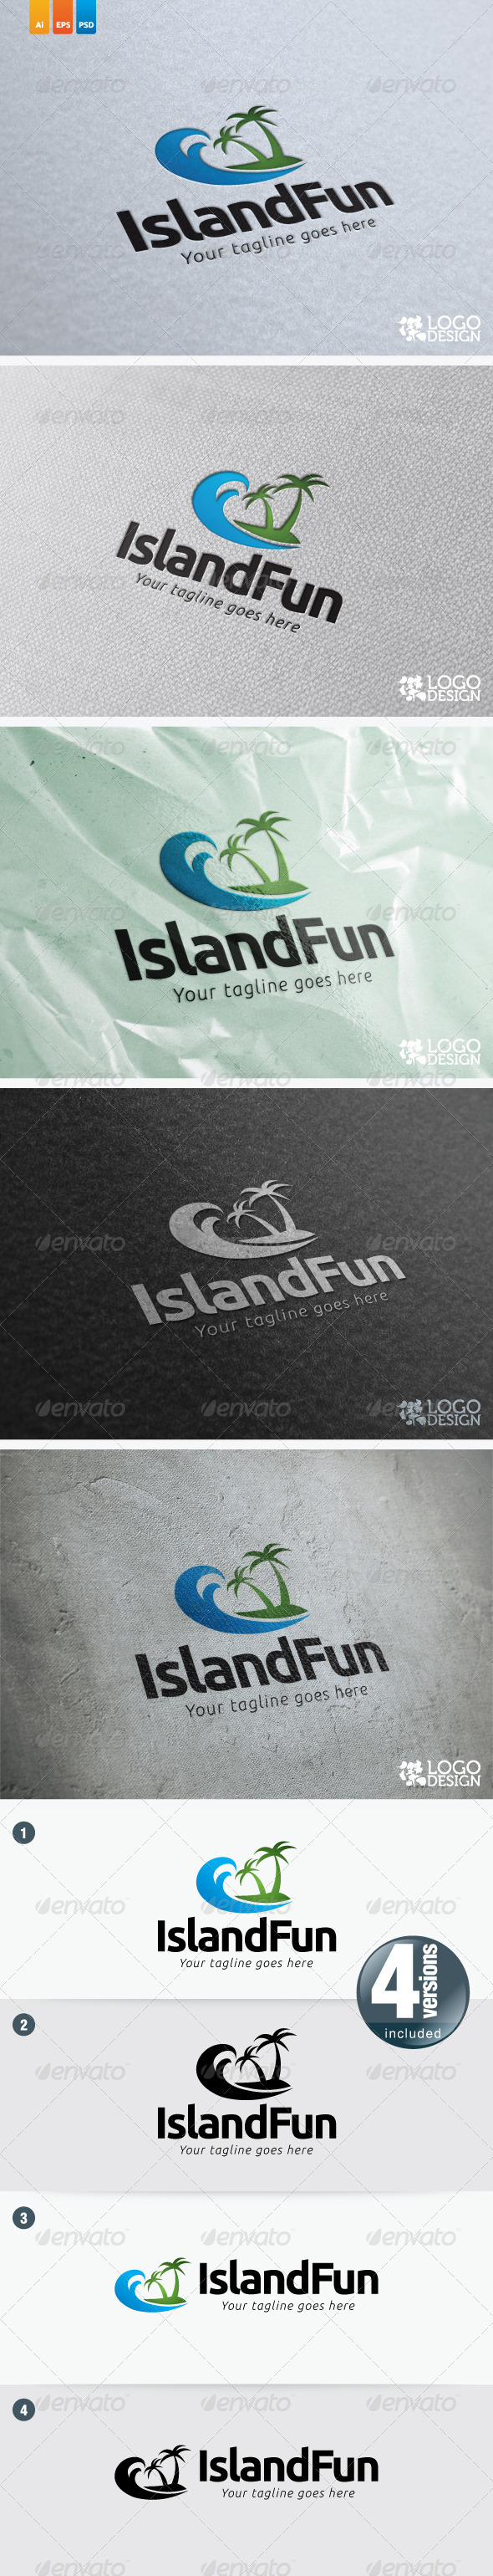 GraphicRiver Island Fun 5781703